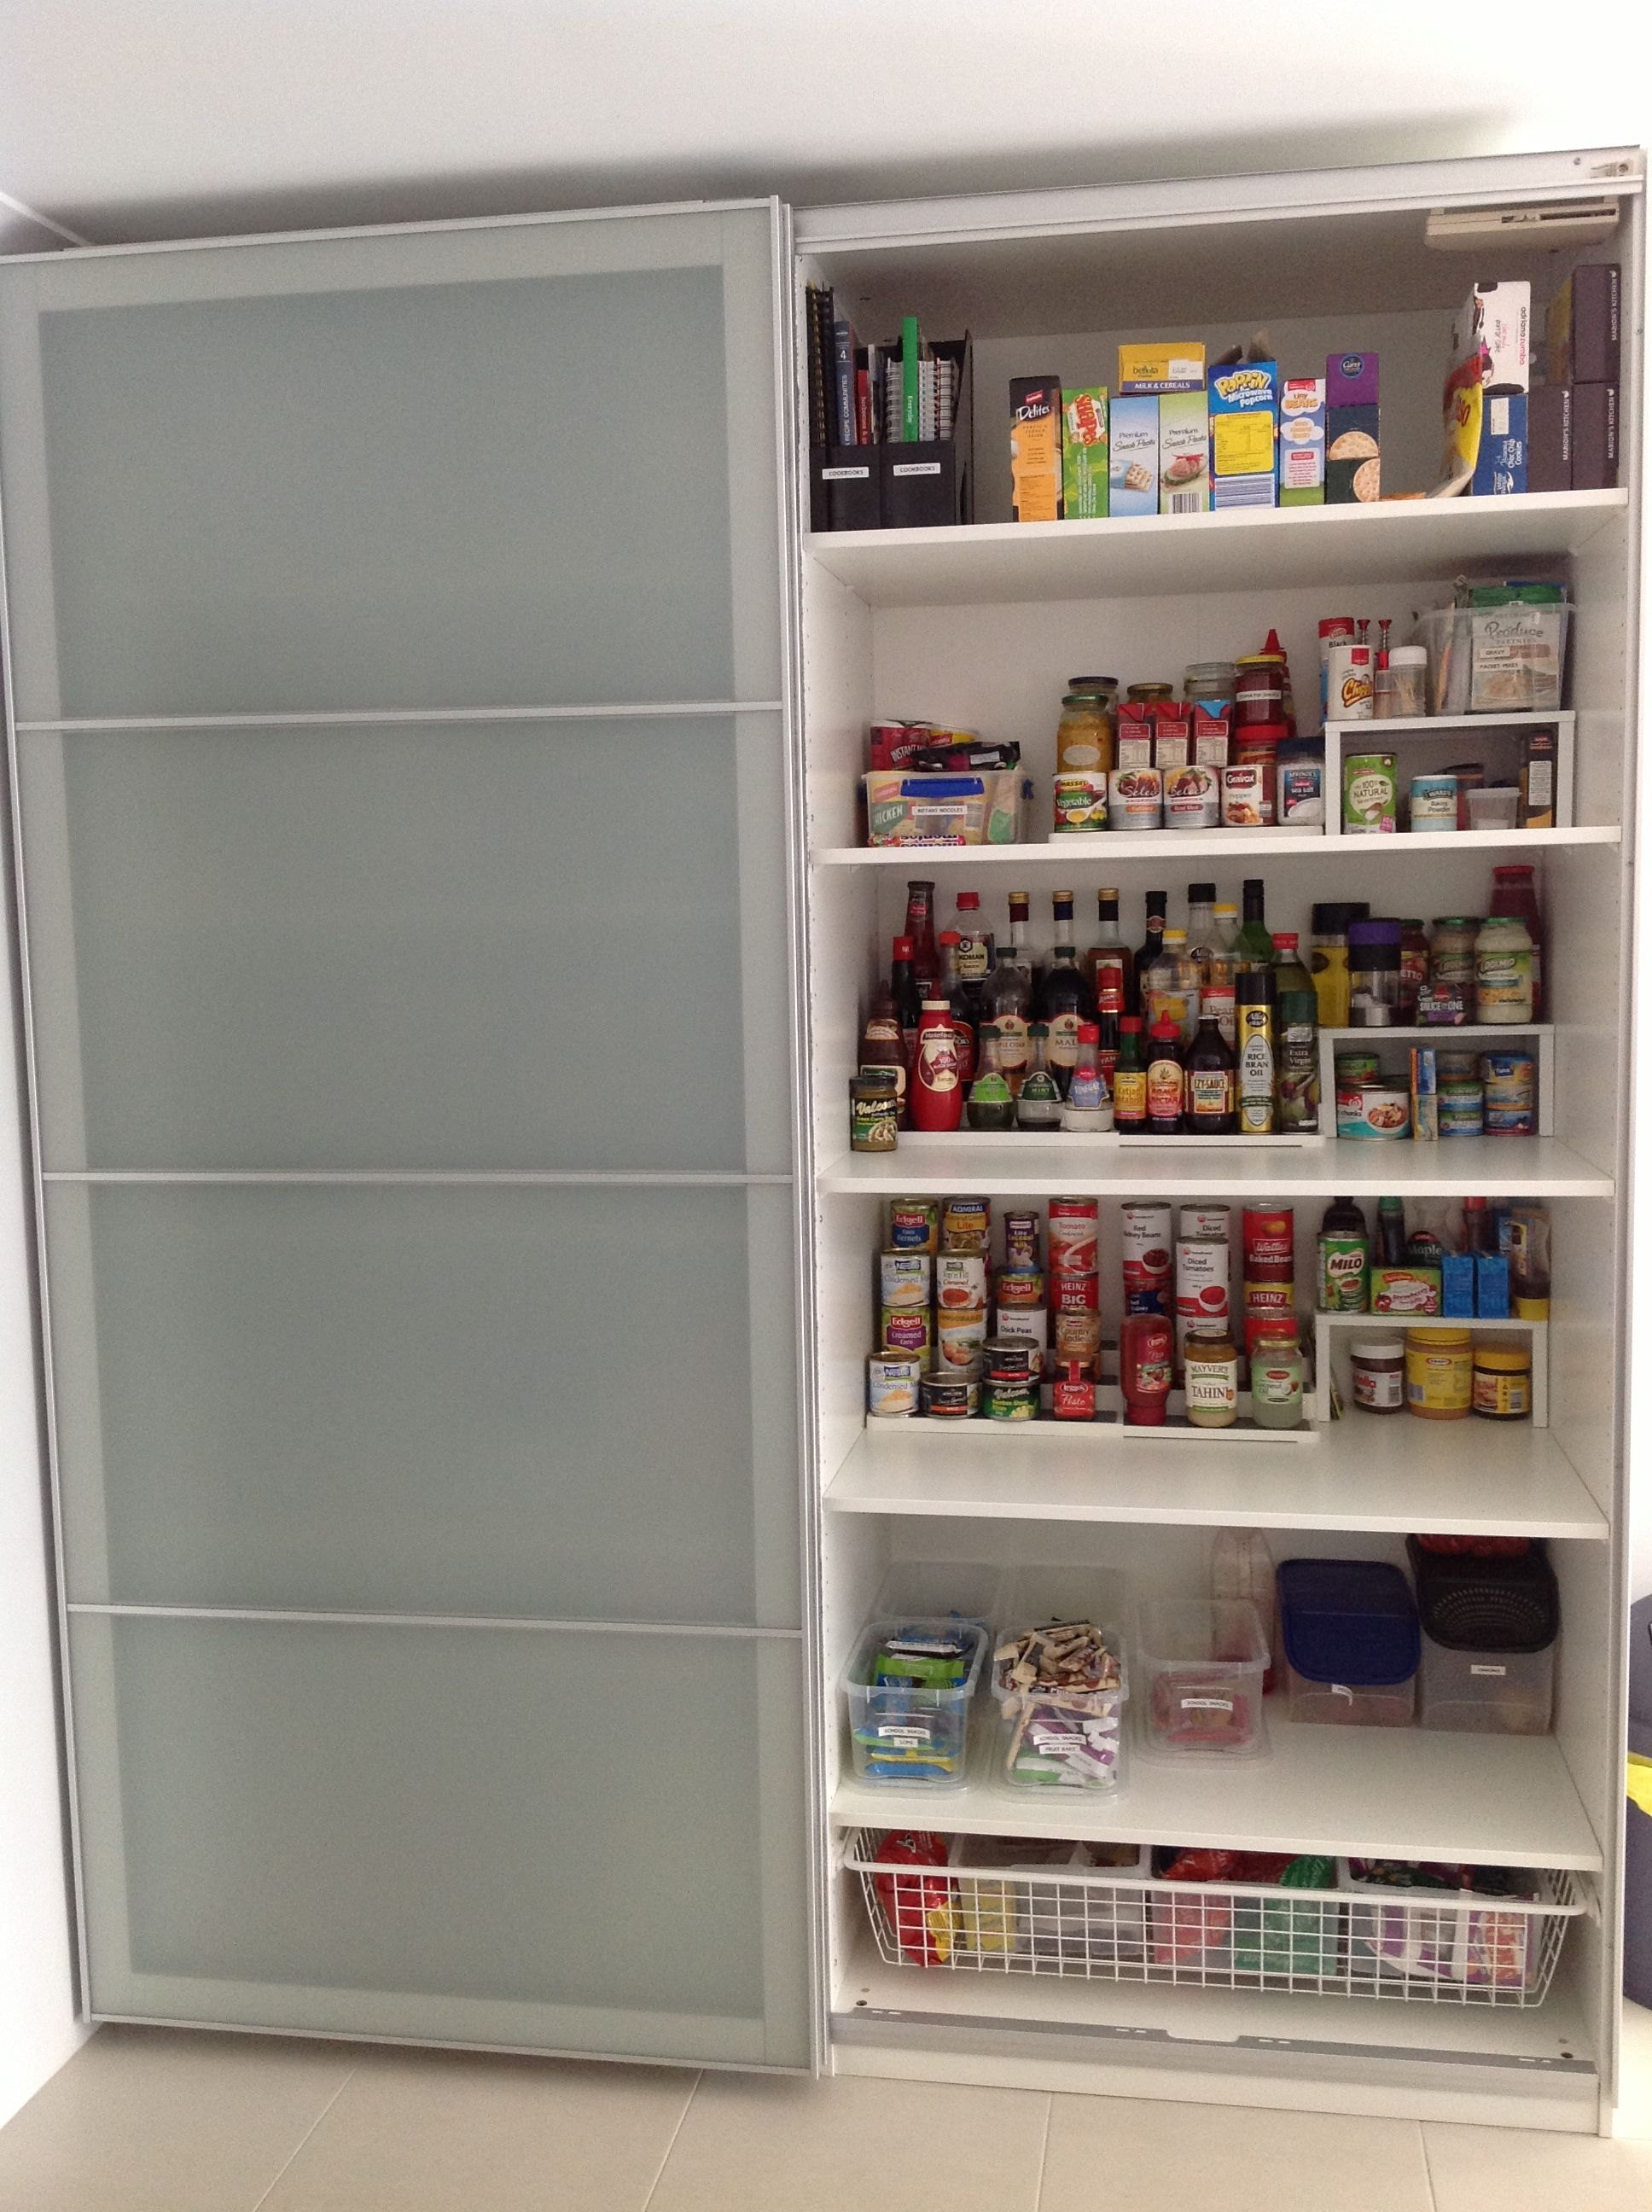 Kitchen Pantry Shelving Systems Designing A Ikea Pax Wardrobe Used As But I 39d